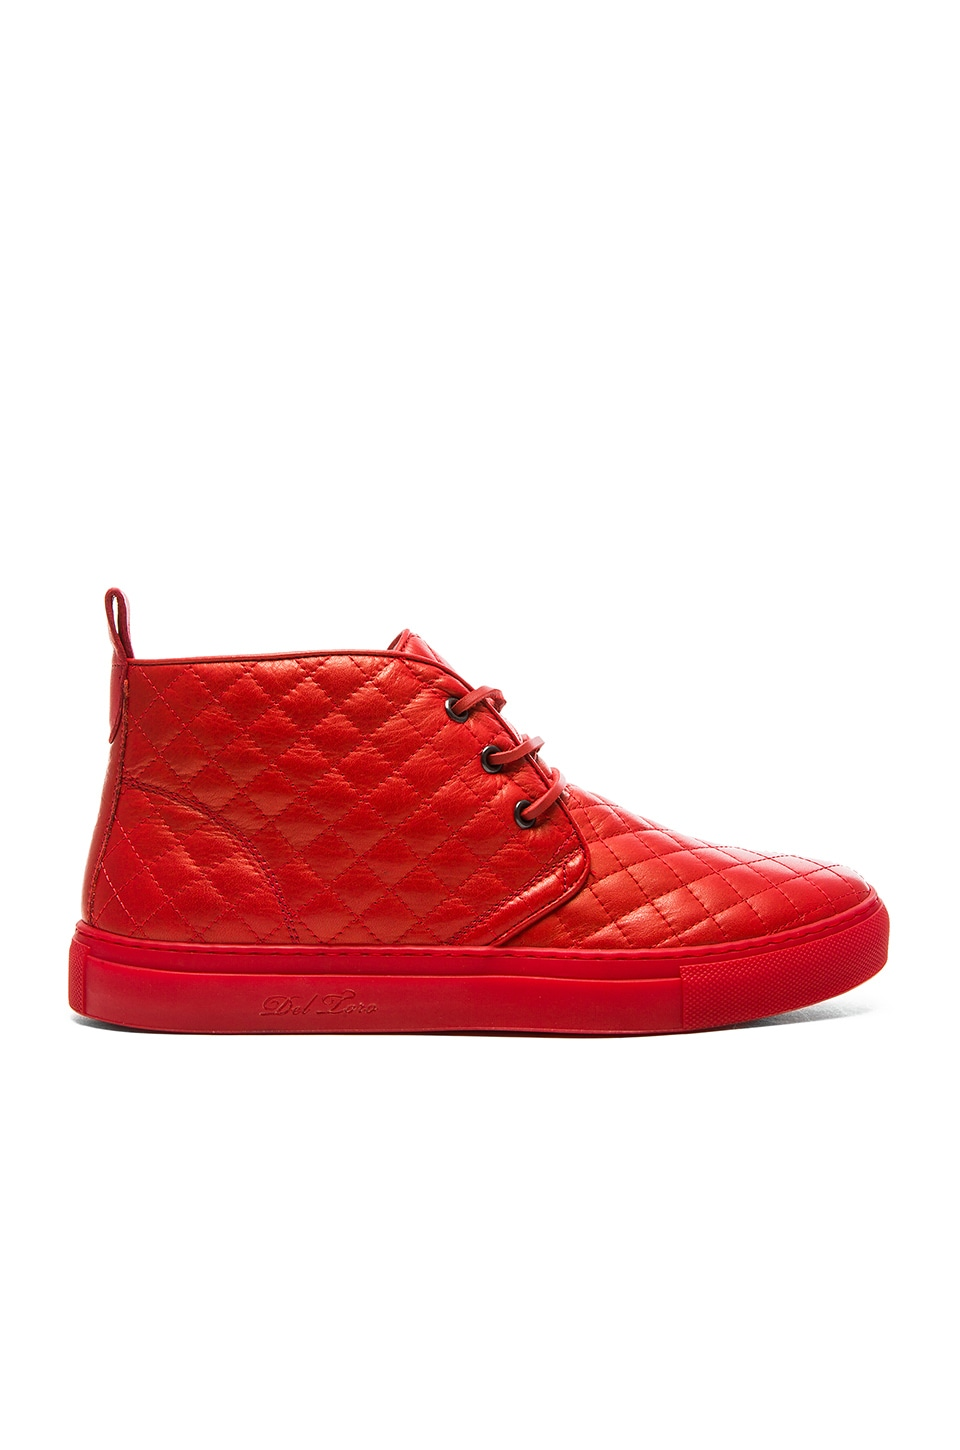 Del Toro Quilted Leather Chukka in Red